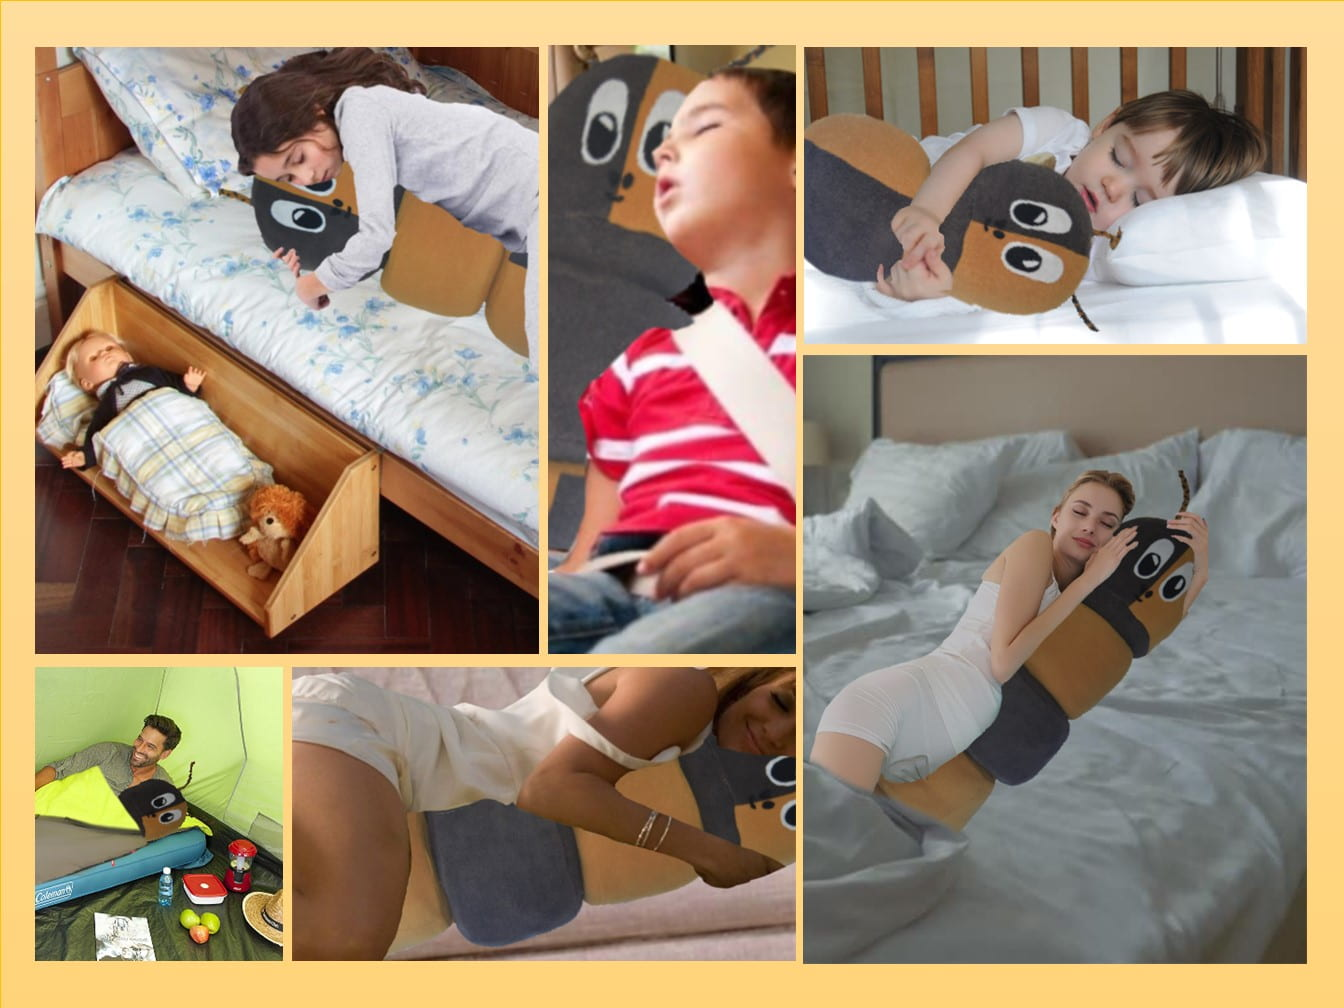 The Cattapillow is designed with the user in mind. Cattapillow can be used from young age, growing up with the users. From car journeys to pregnancy and more, Cattapillow will be by your side.